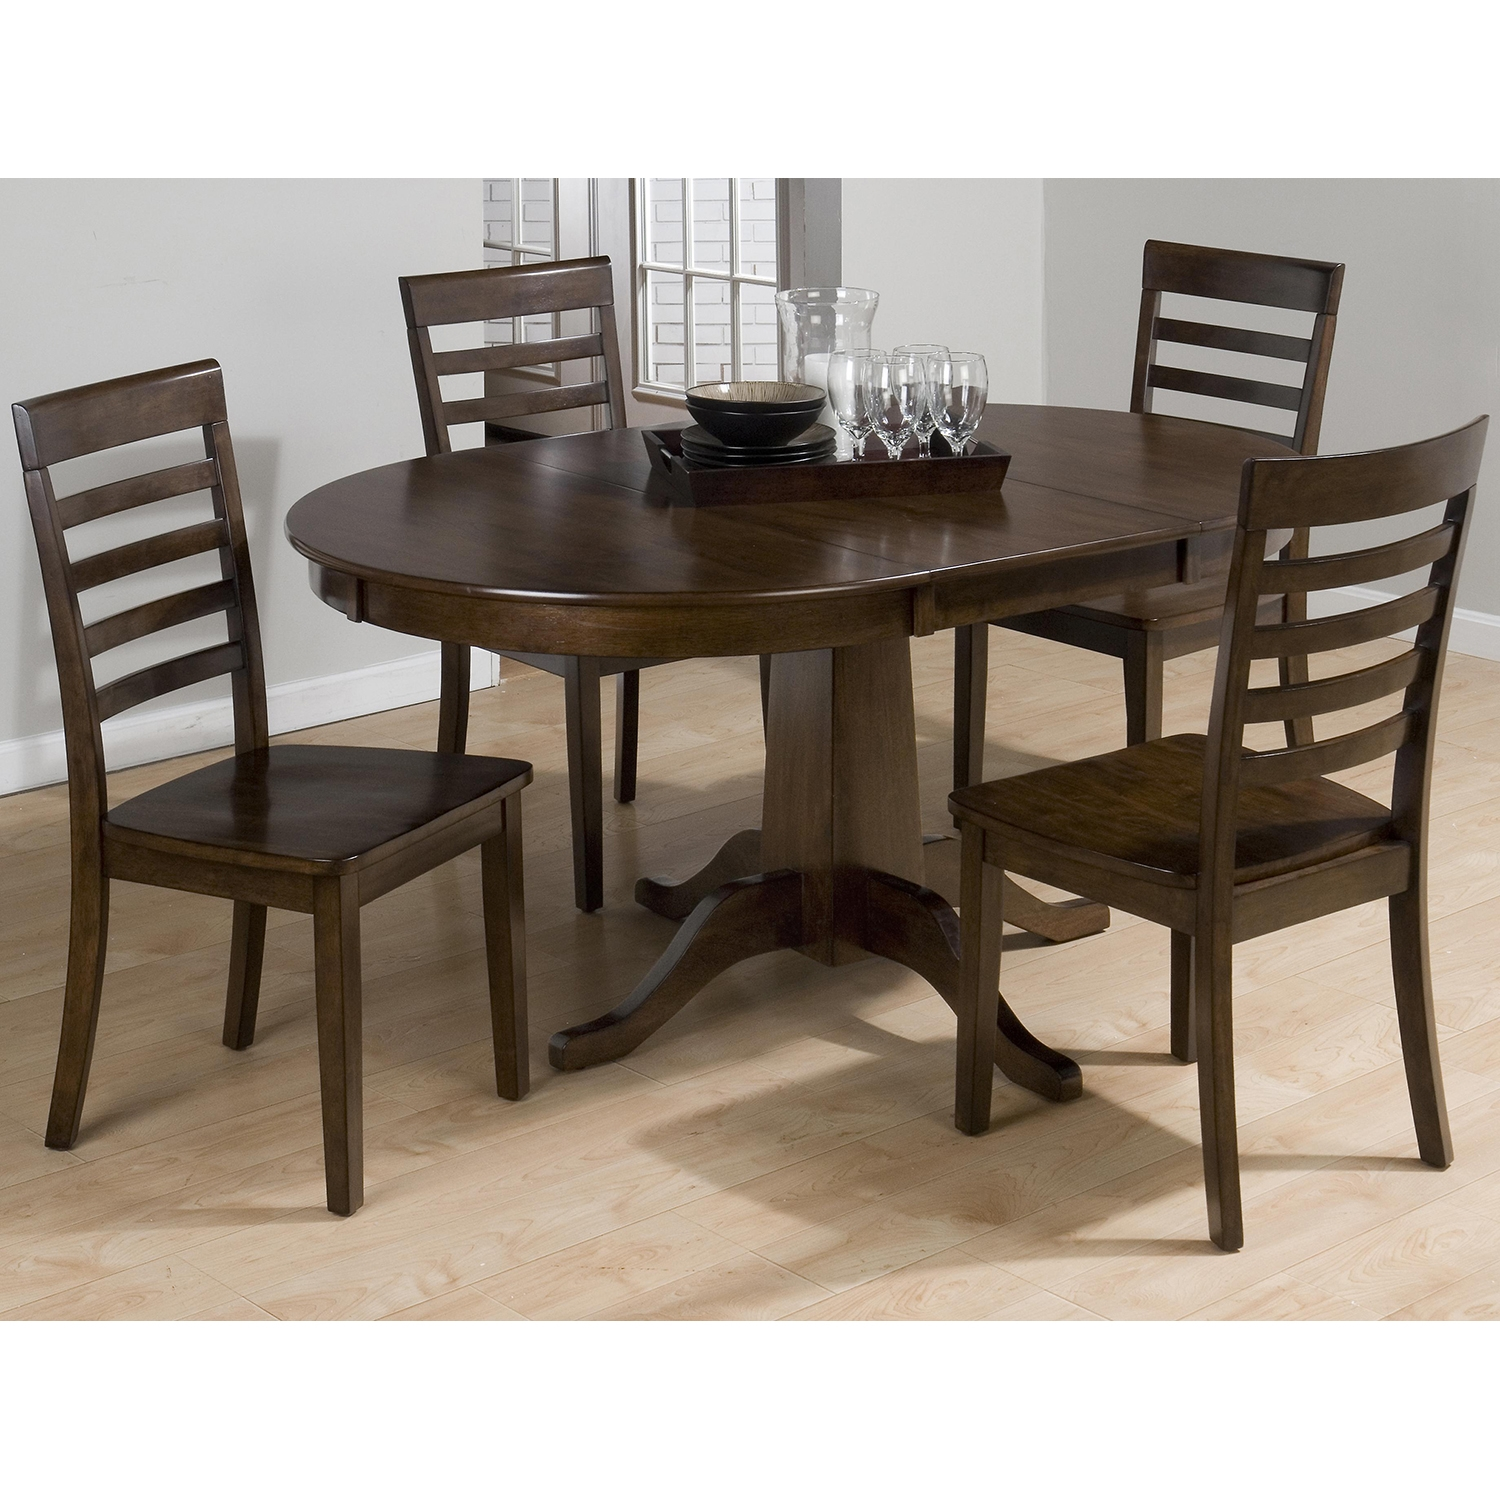 Richmond Extension Dining Table - Cherry - JOFR-342-60TBKT